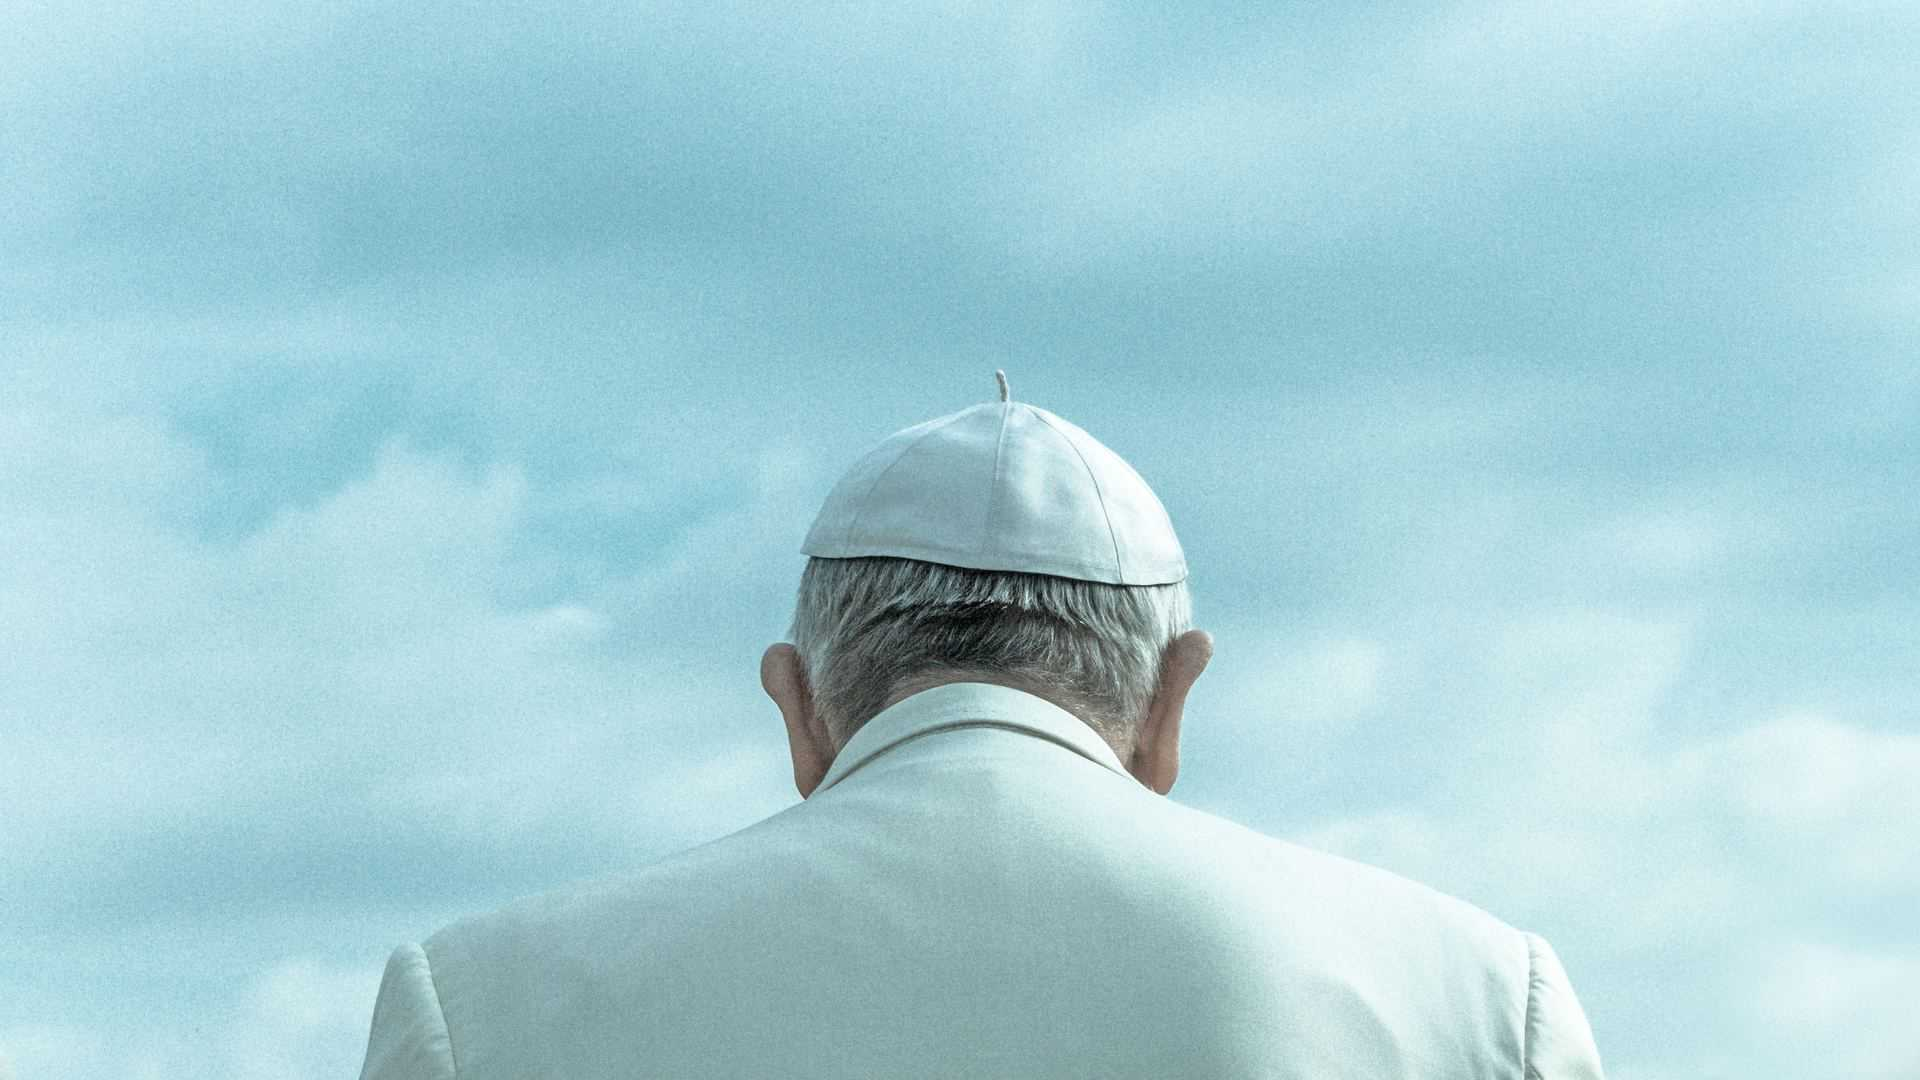 The back of Pope Francis against a blue cloudy sky